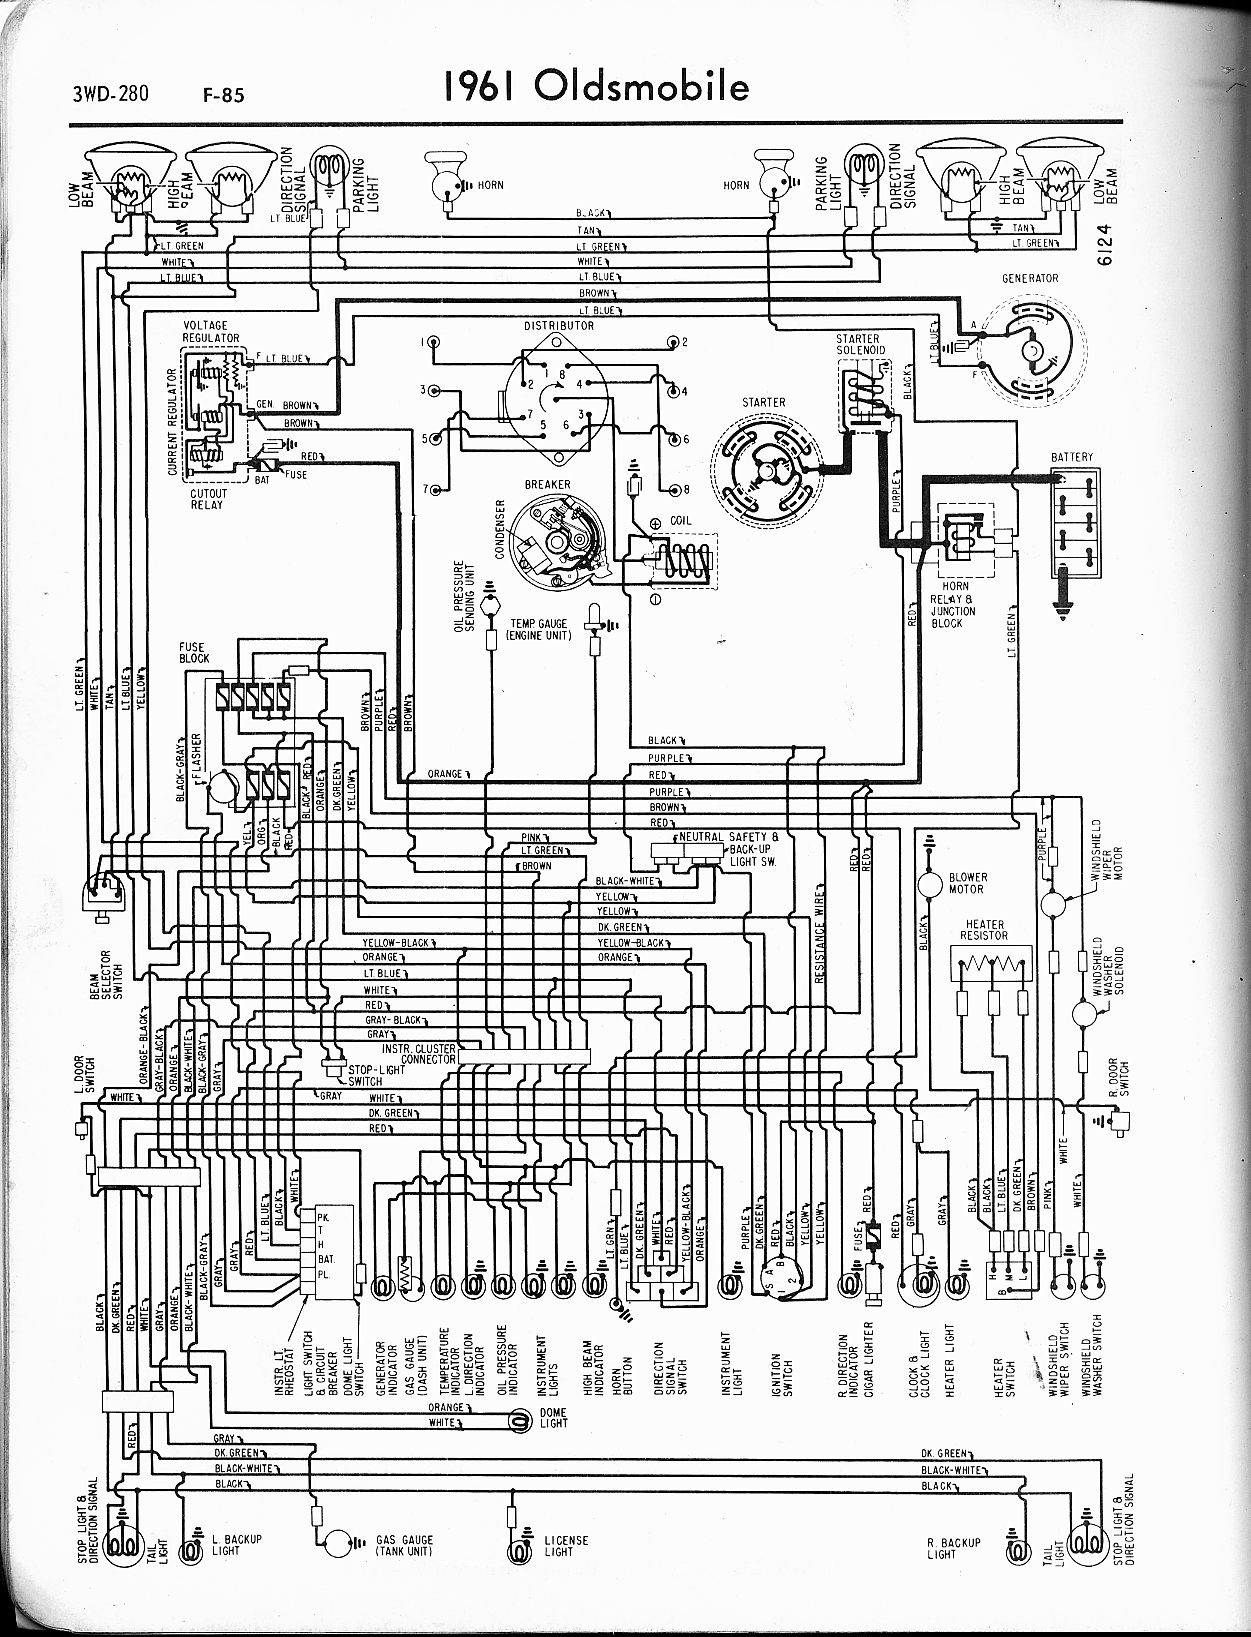 1969 oldsmobile cutlass wiring diagram best wiring library rh 51 princestaash org